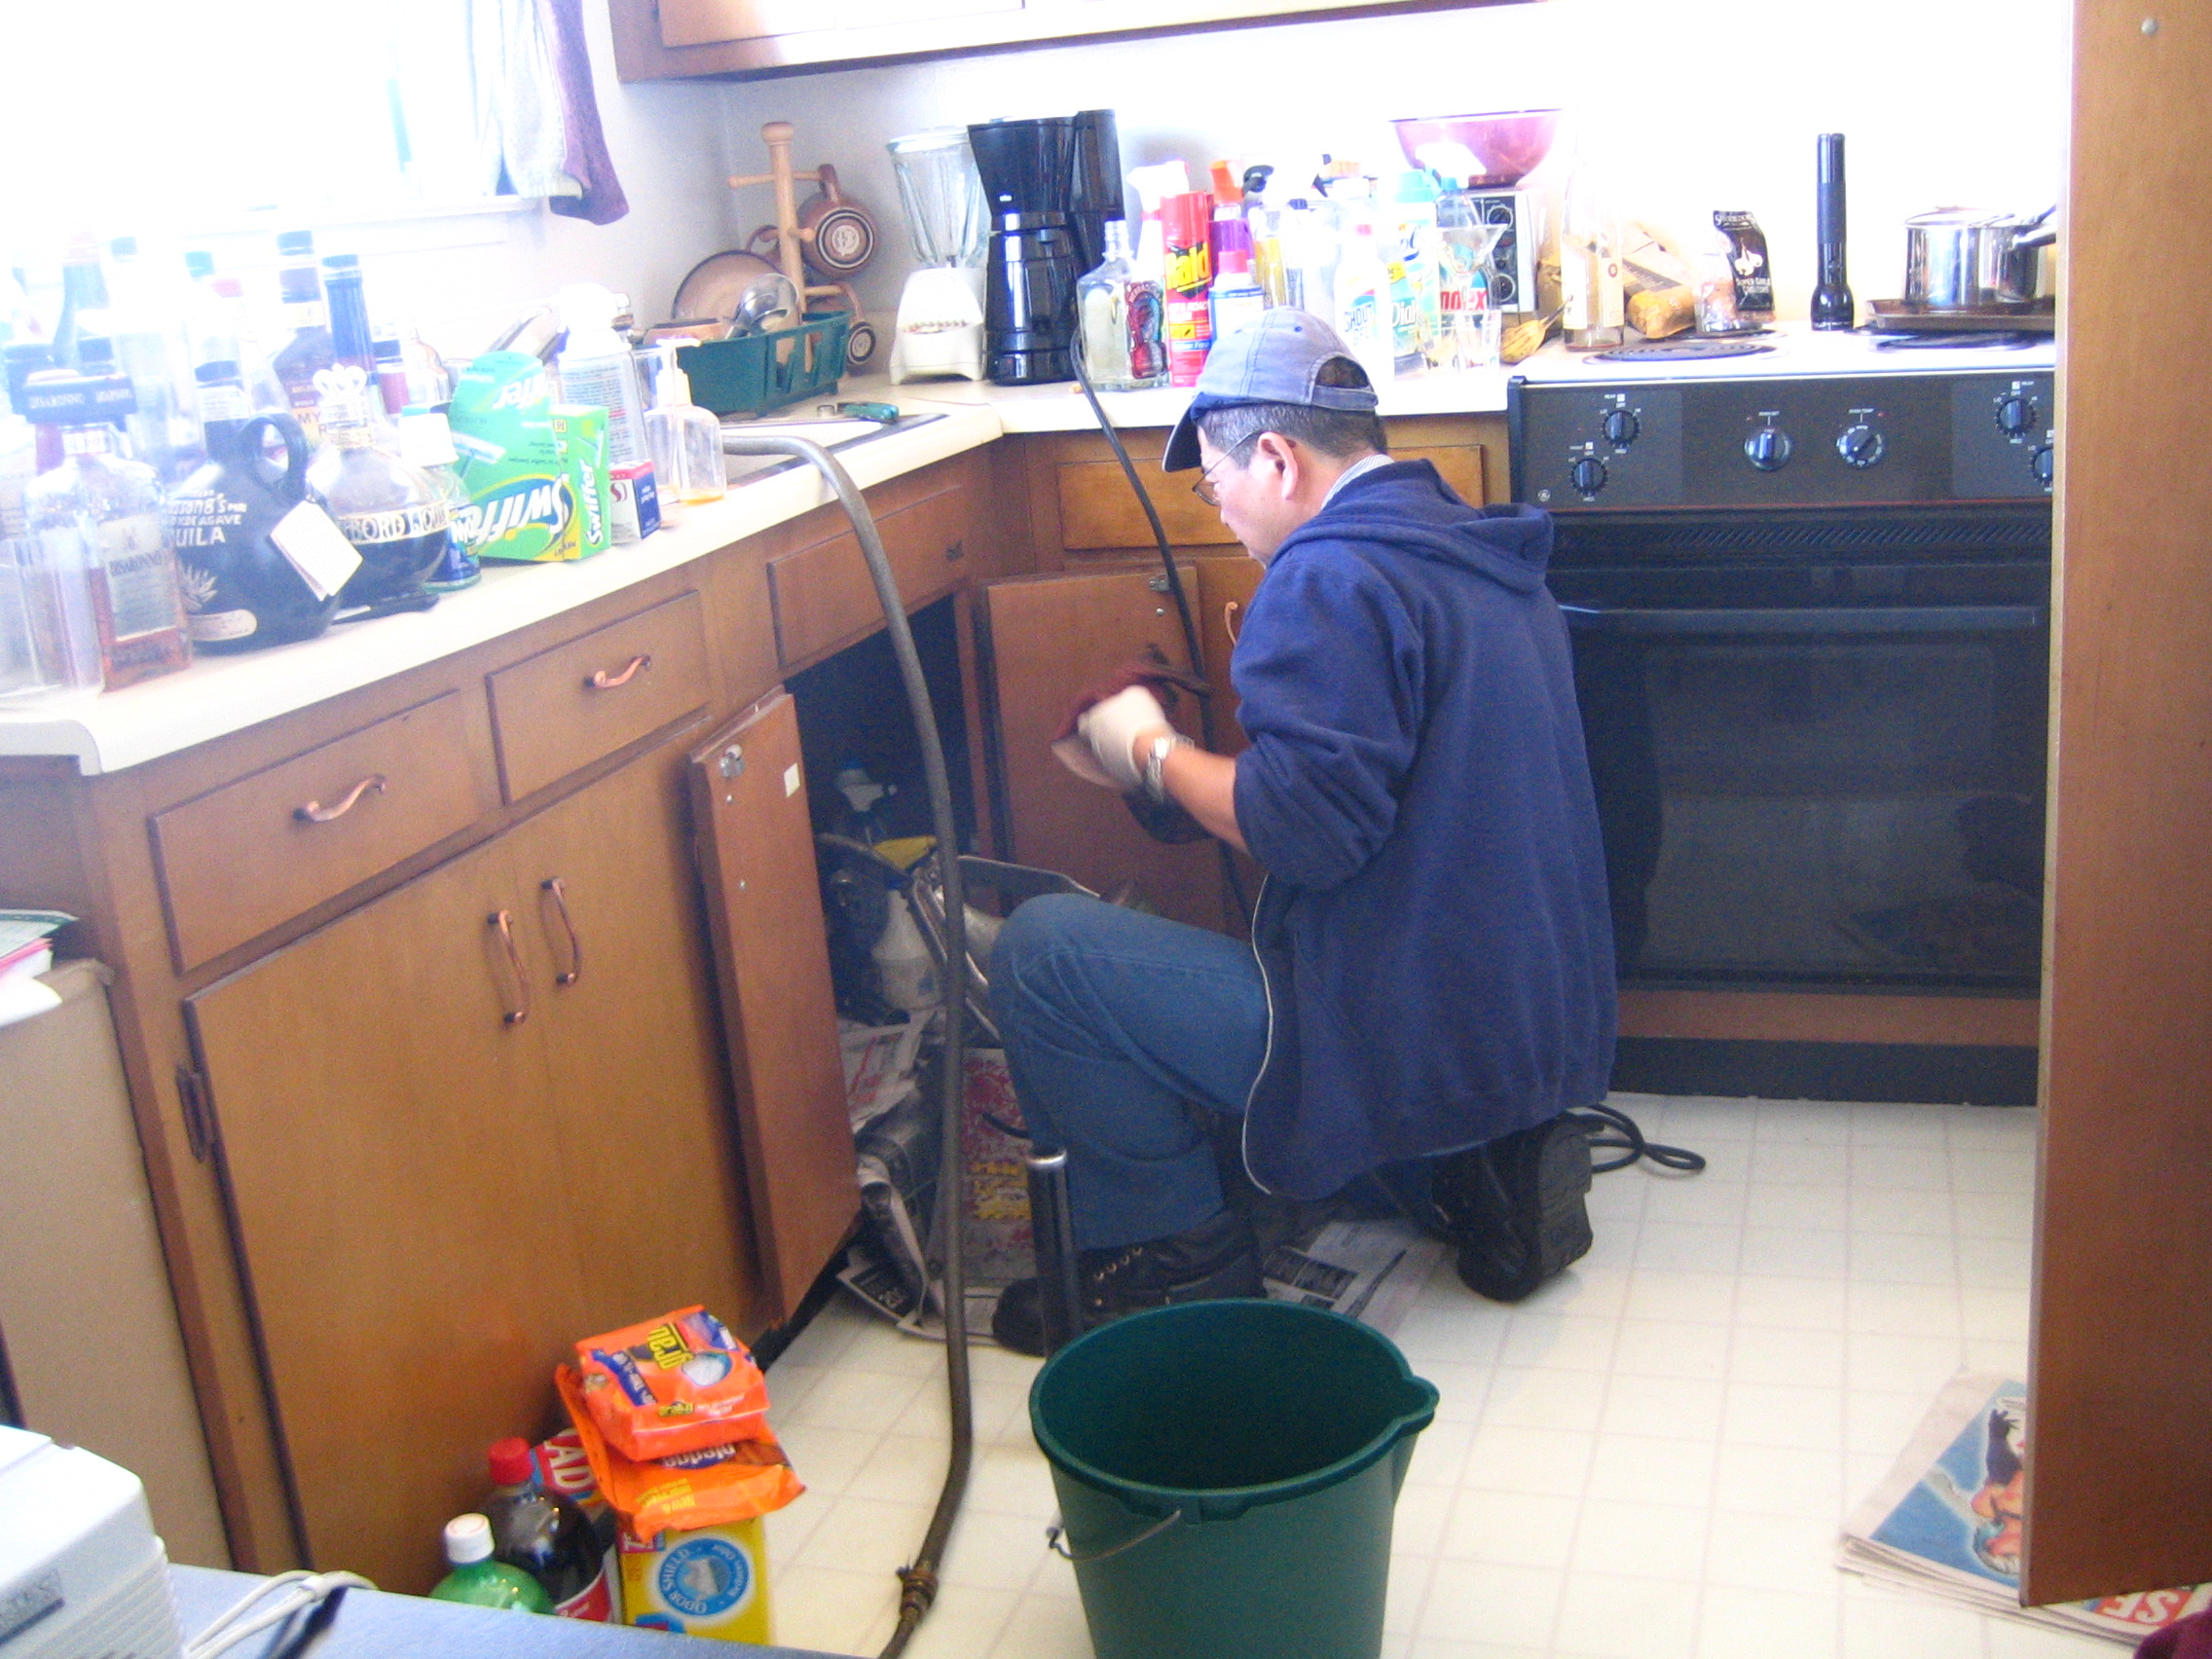 plumber working in the kitchen